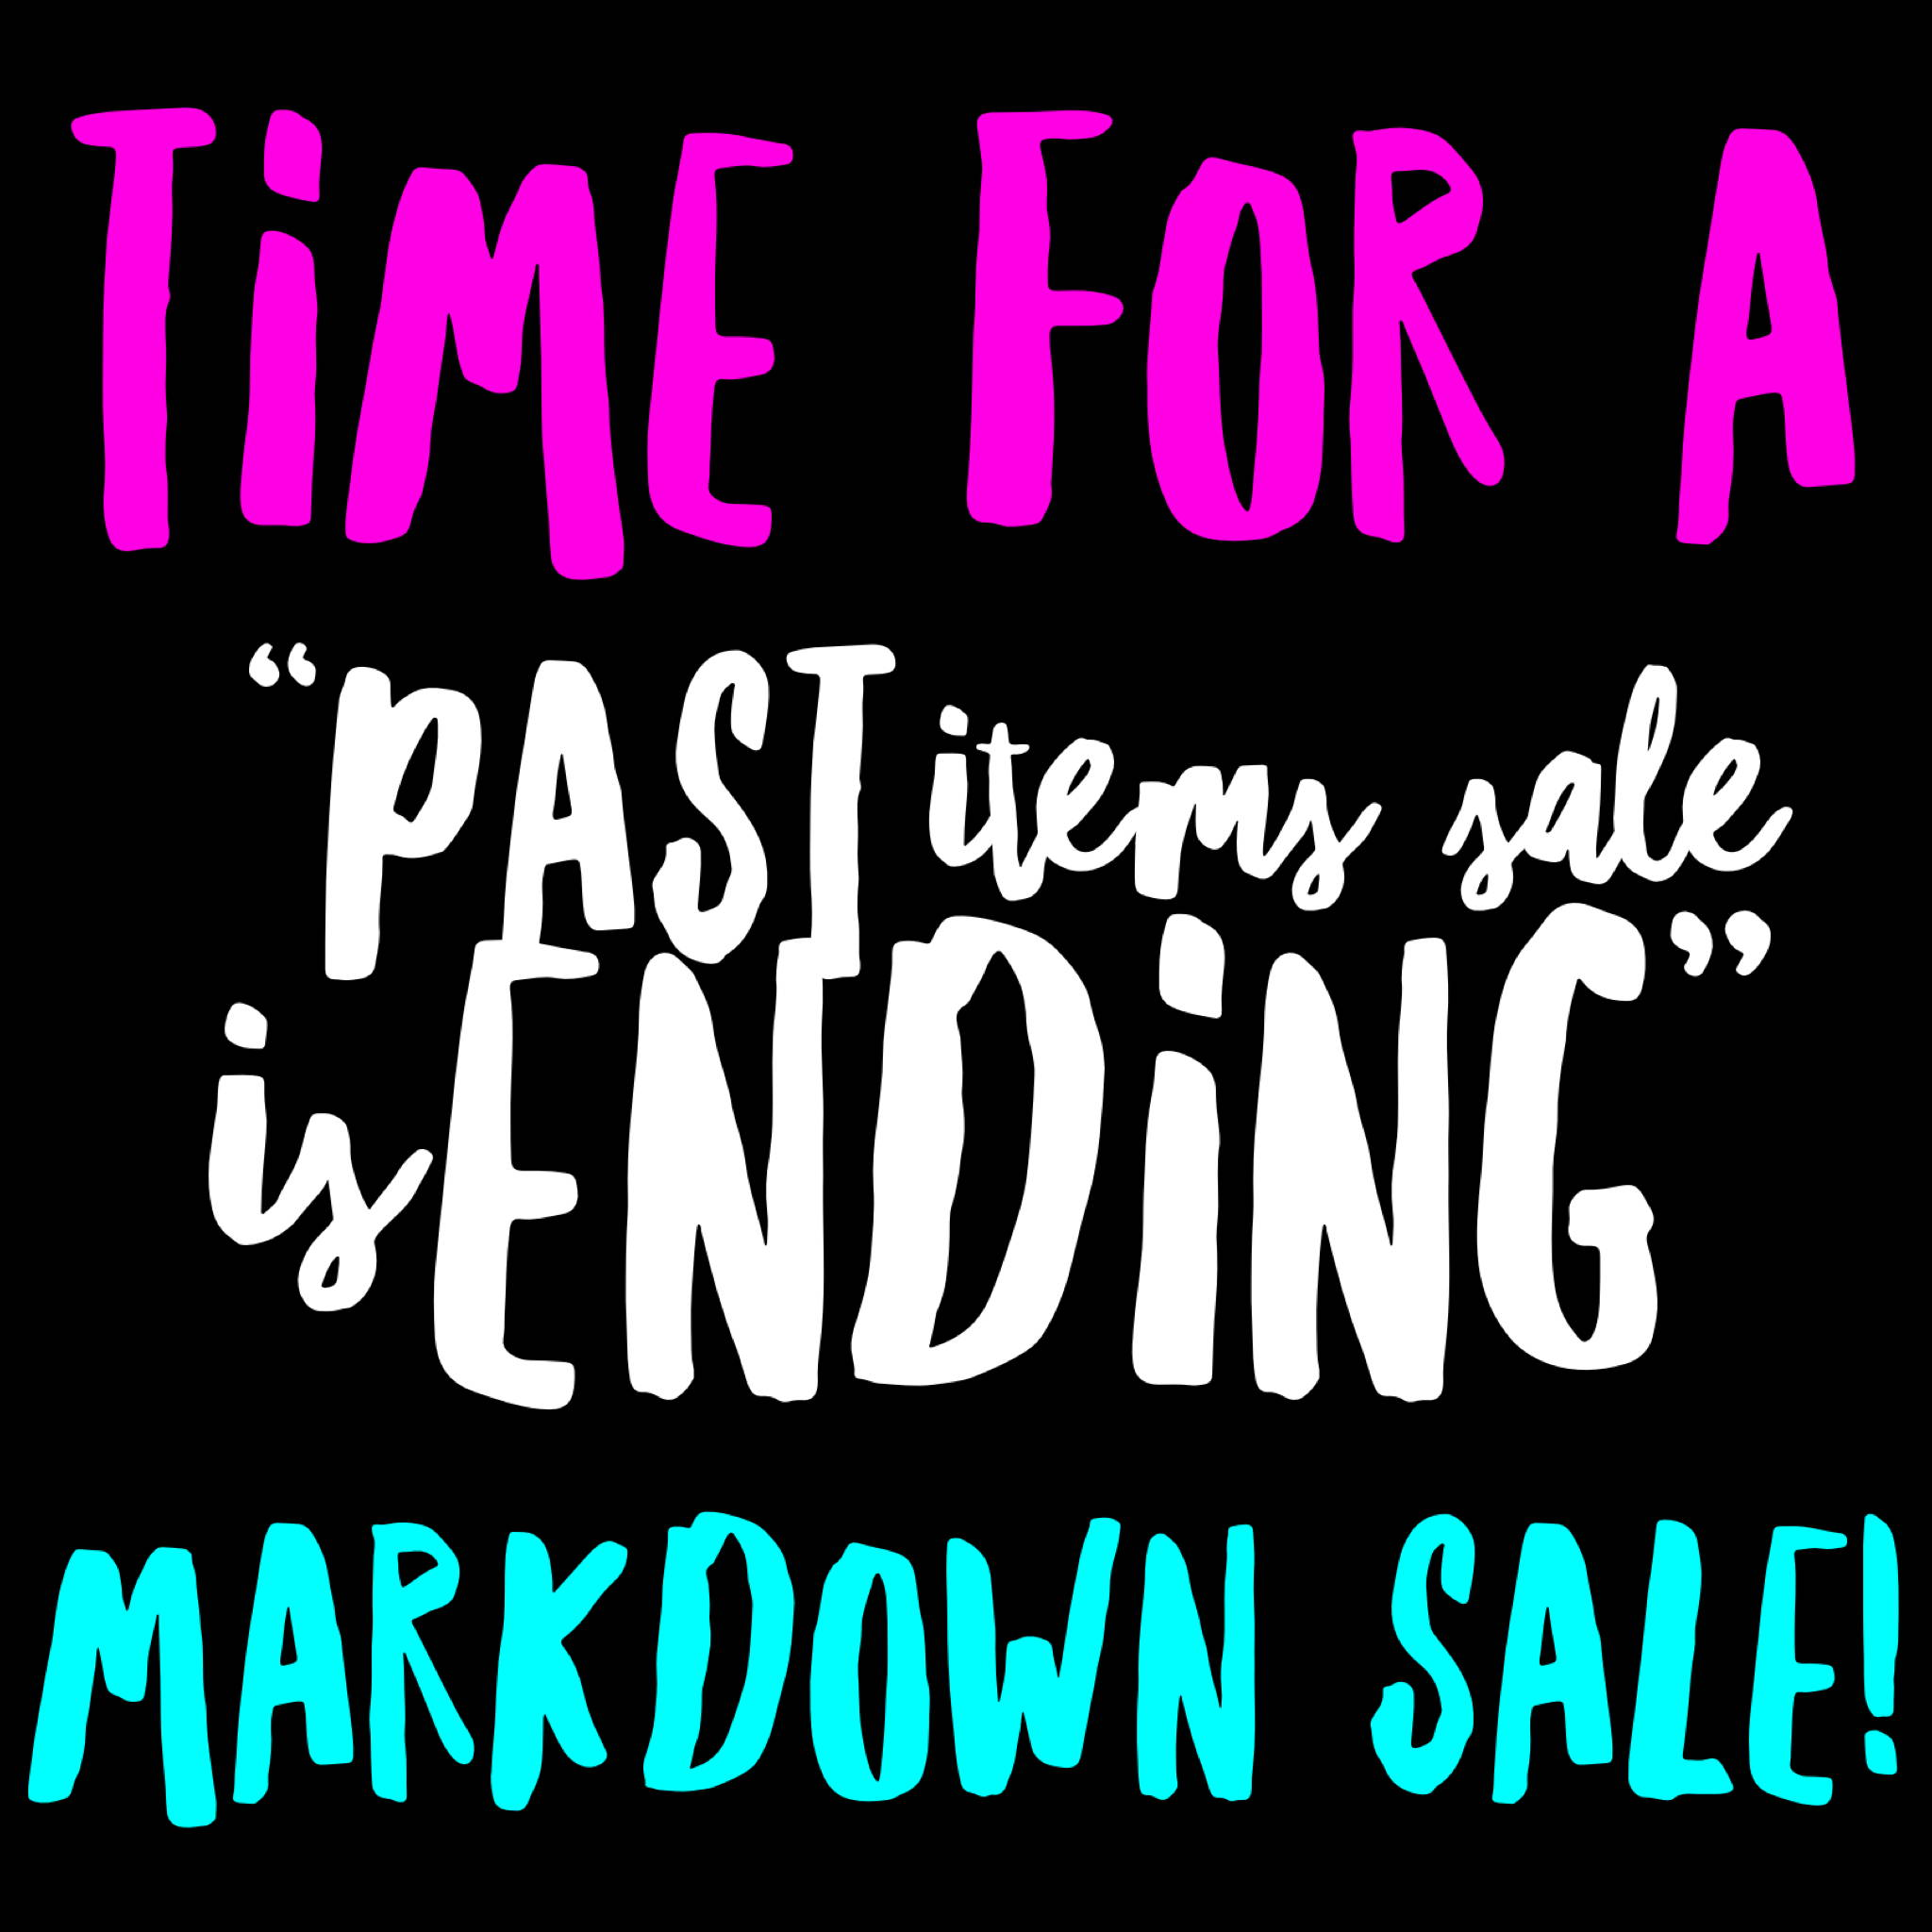 """Time for a """"Past Items Sale is Ending"""" Markdown Sale!"""